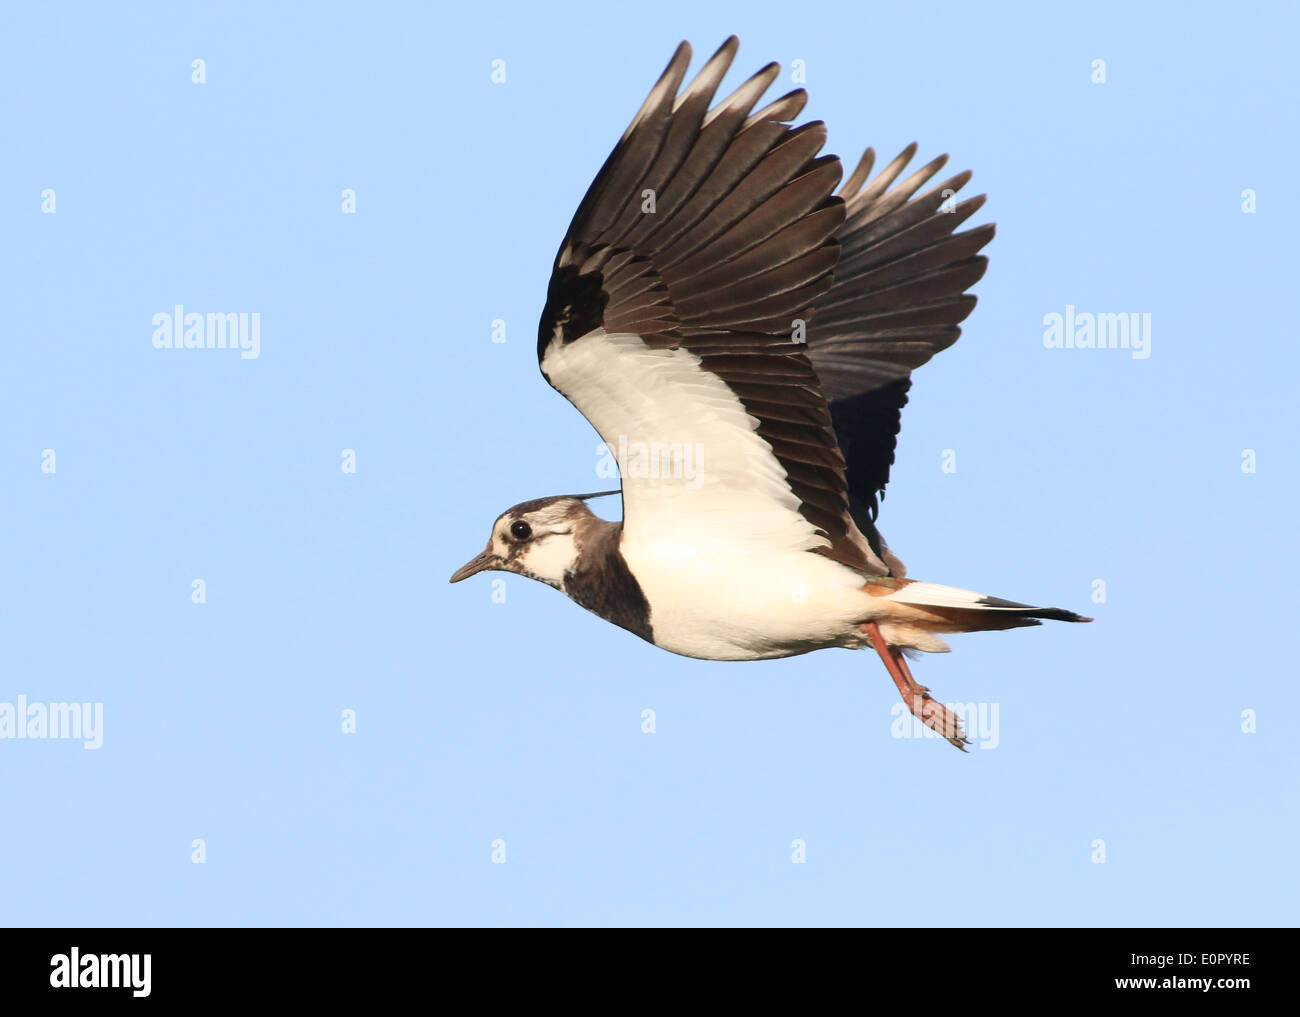 European common lapwing (vanellus vanellus) in flight at close range, wings fully extended upwards - Stock Image